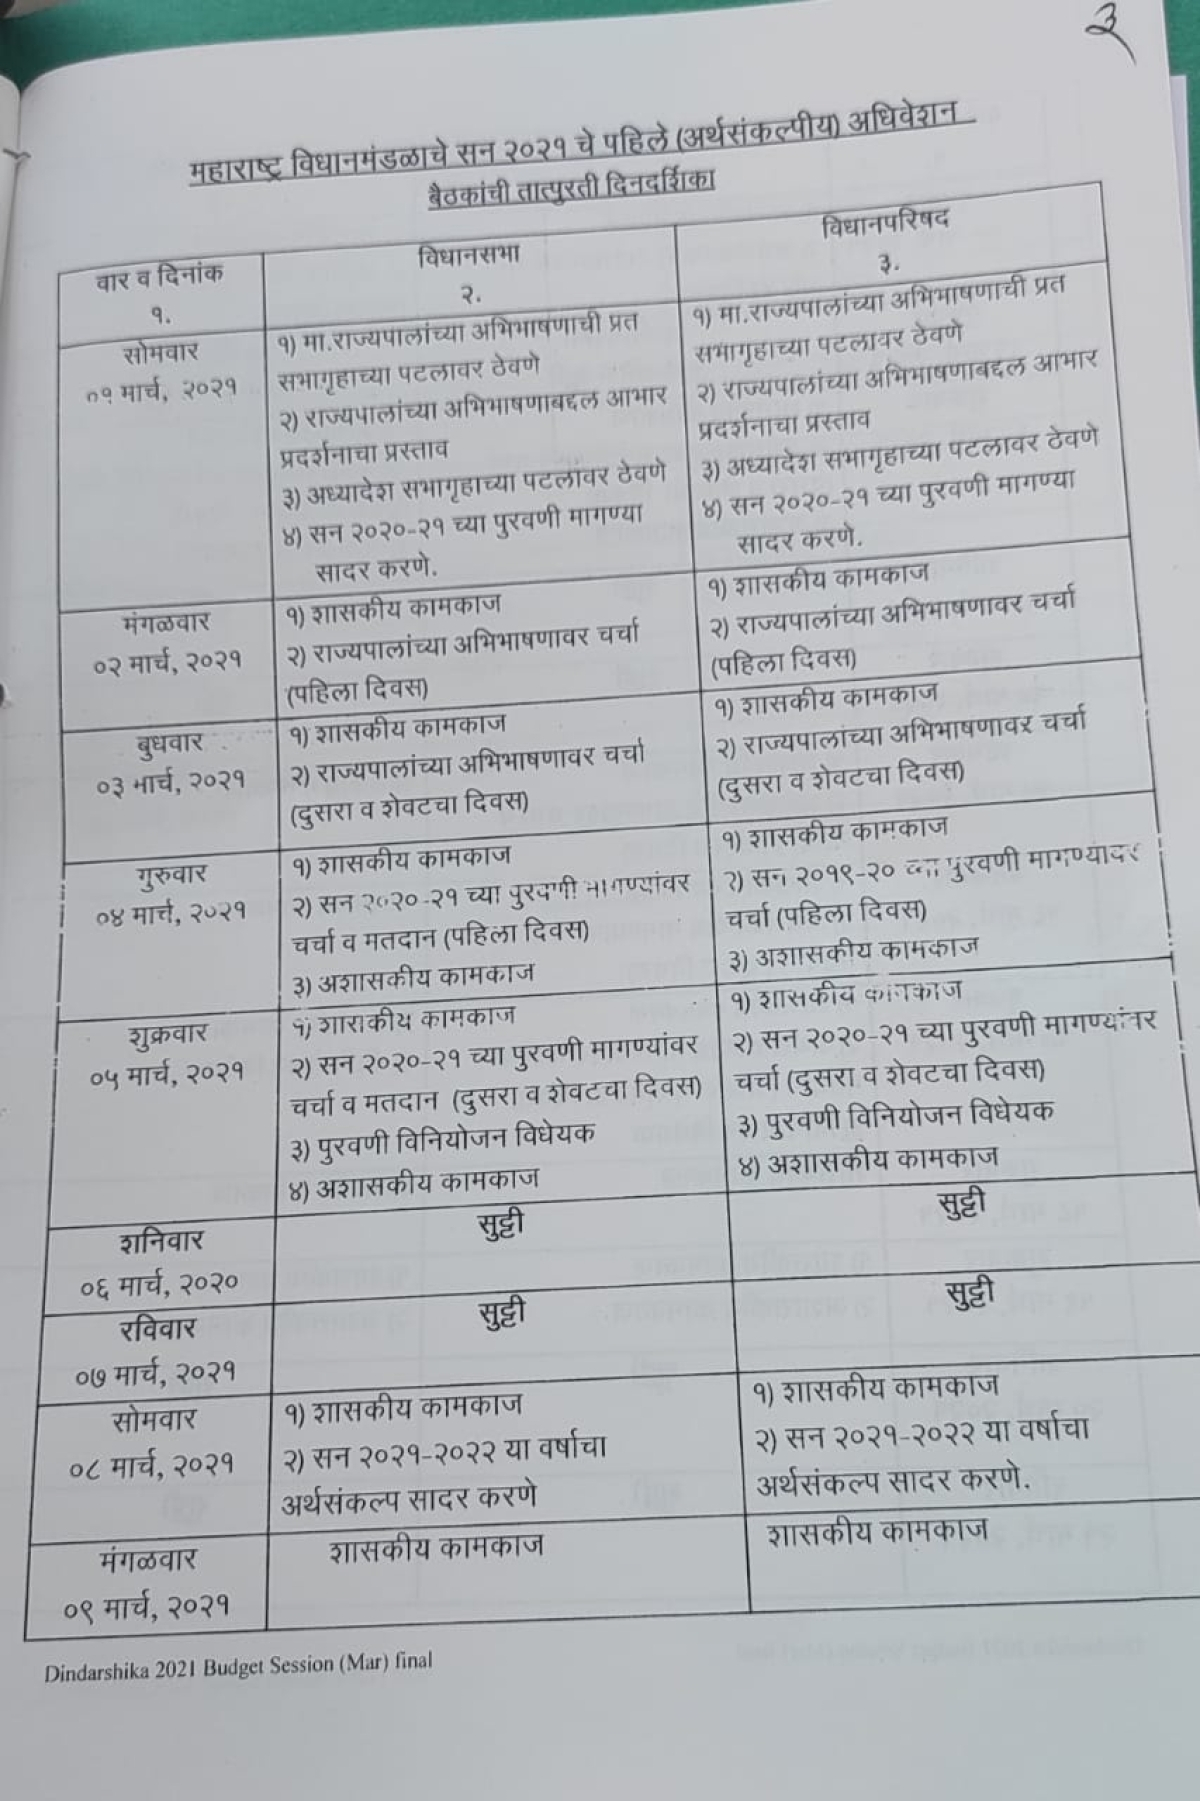 Maharashtra Budget session curtailed, will be held from March 1 to 10 due to spurt in COVID-19 cases